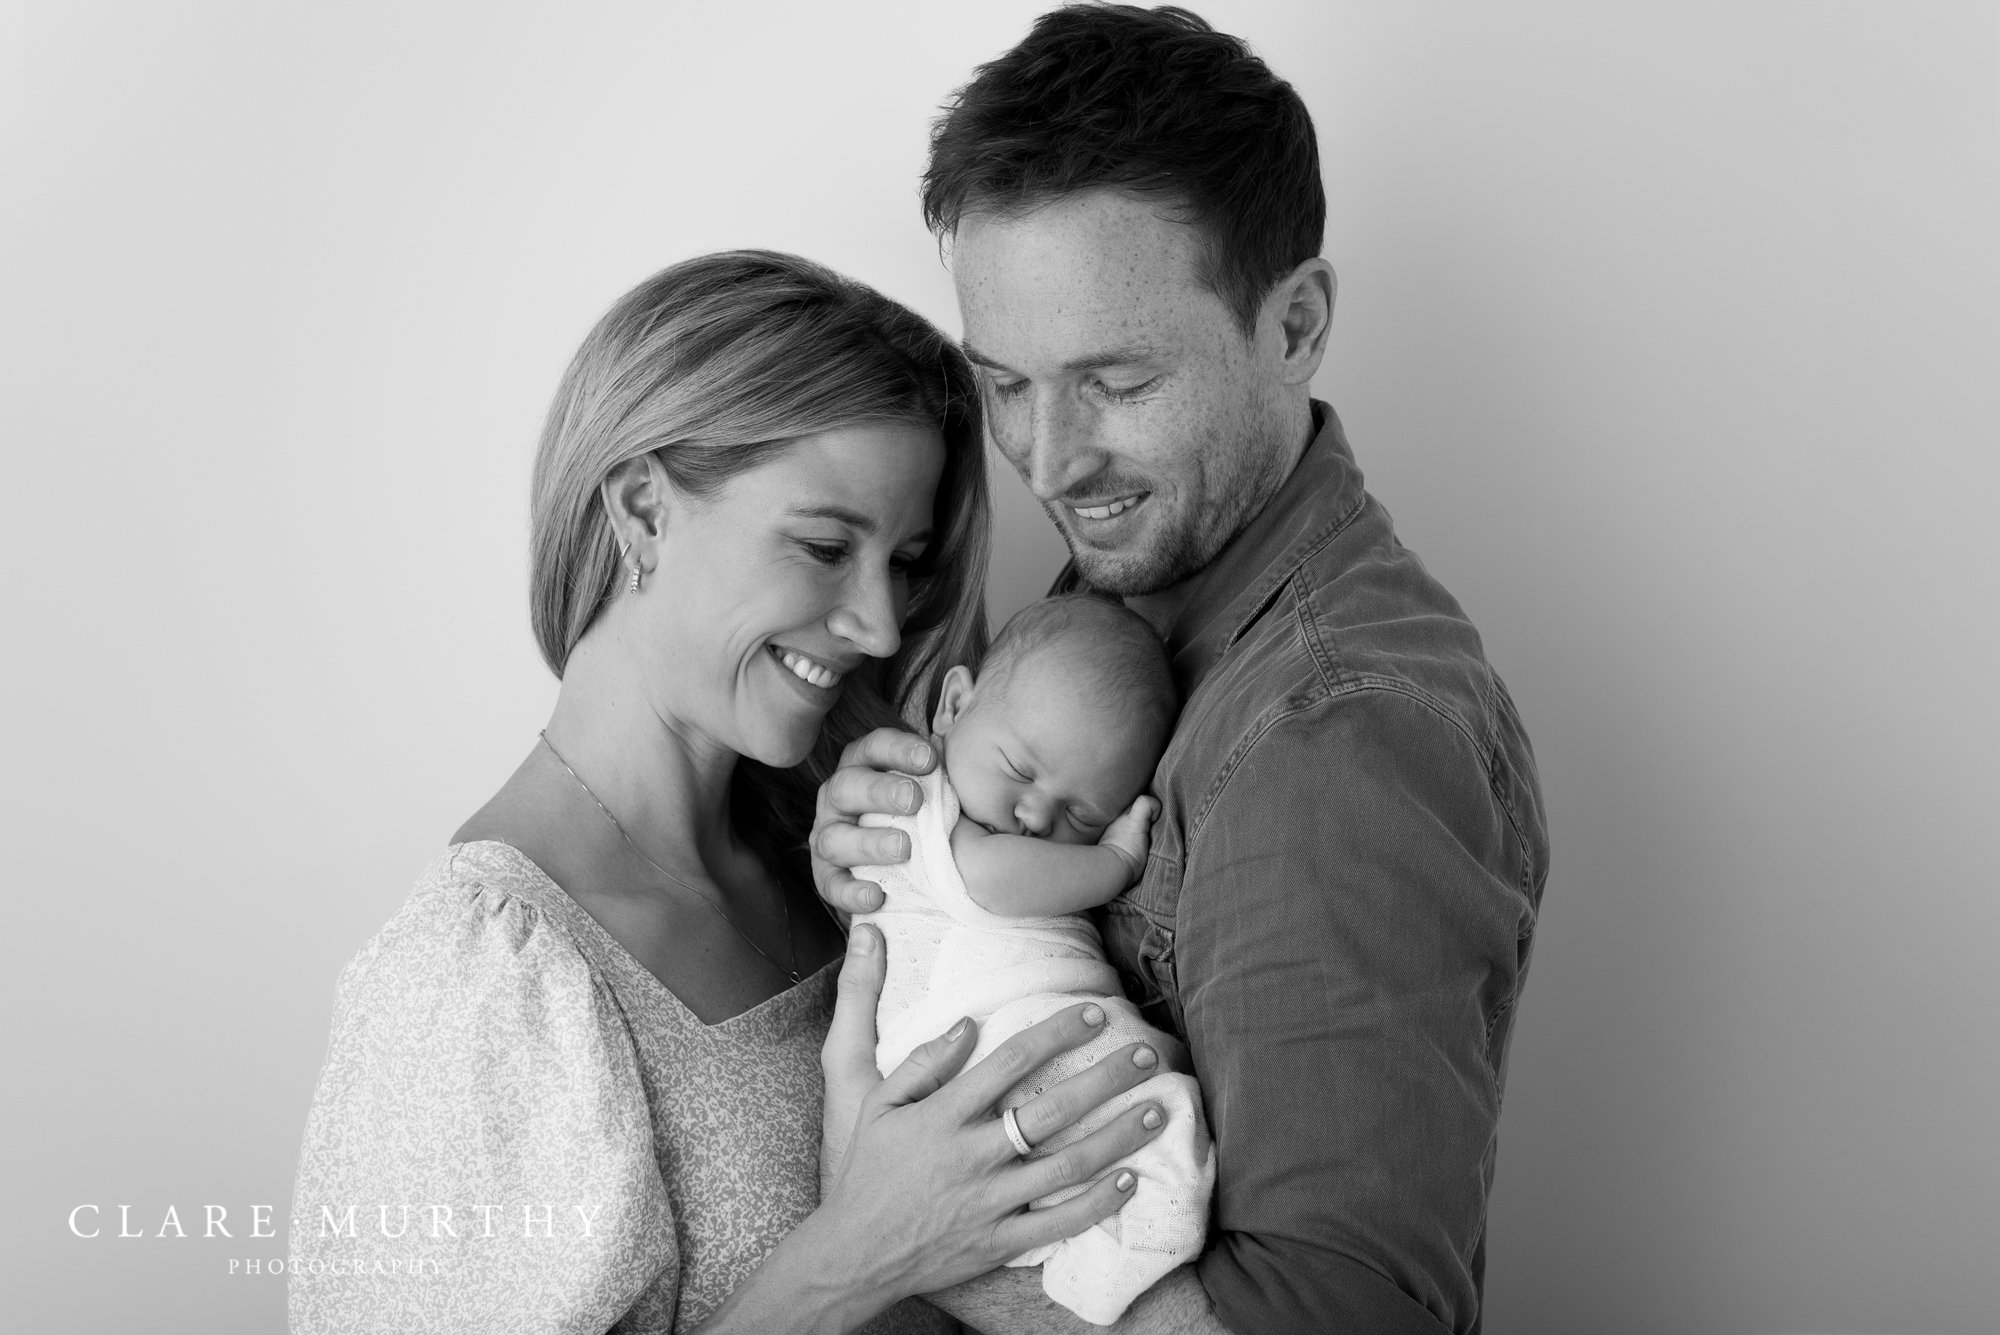 fulham sw6 newborn photography